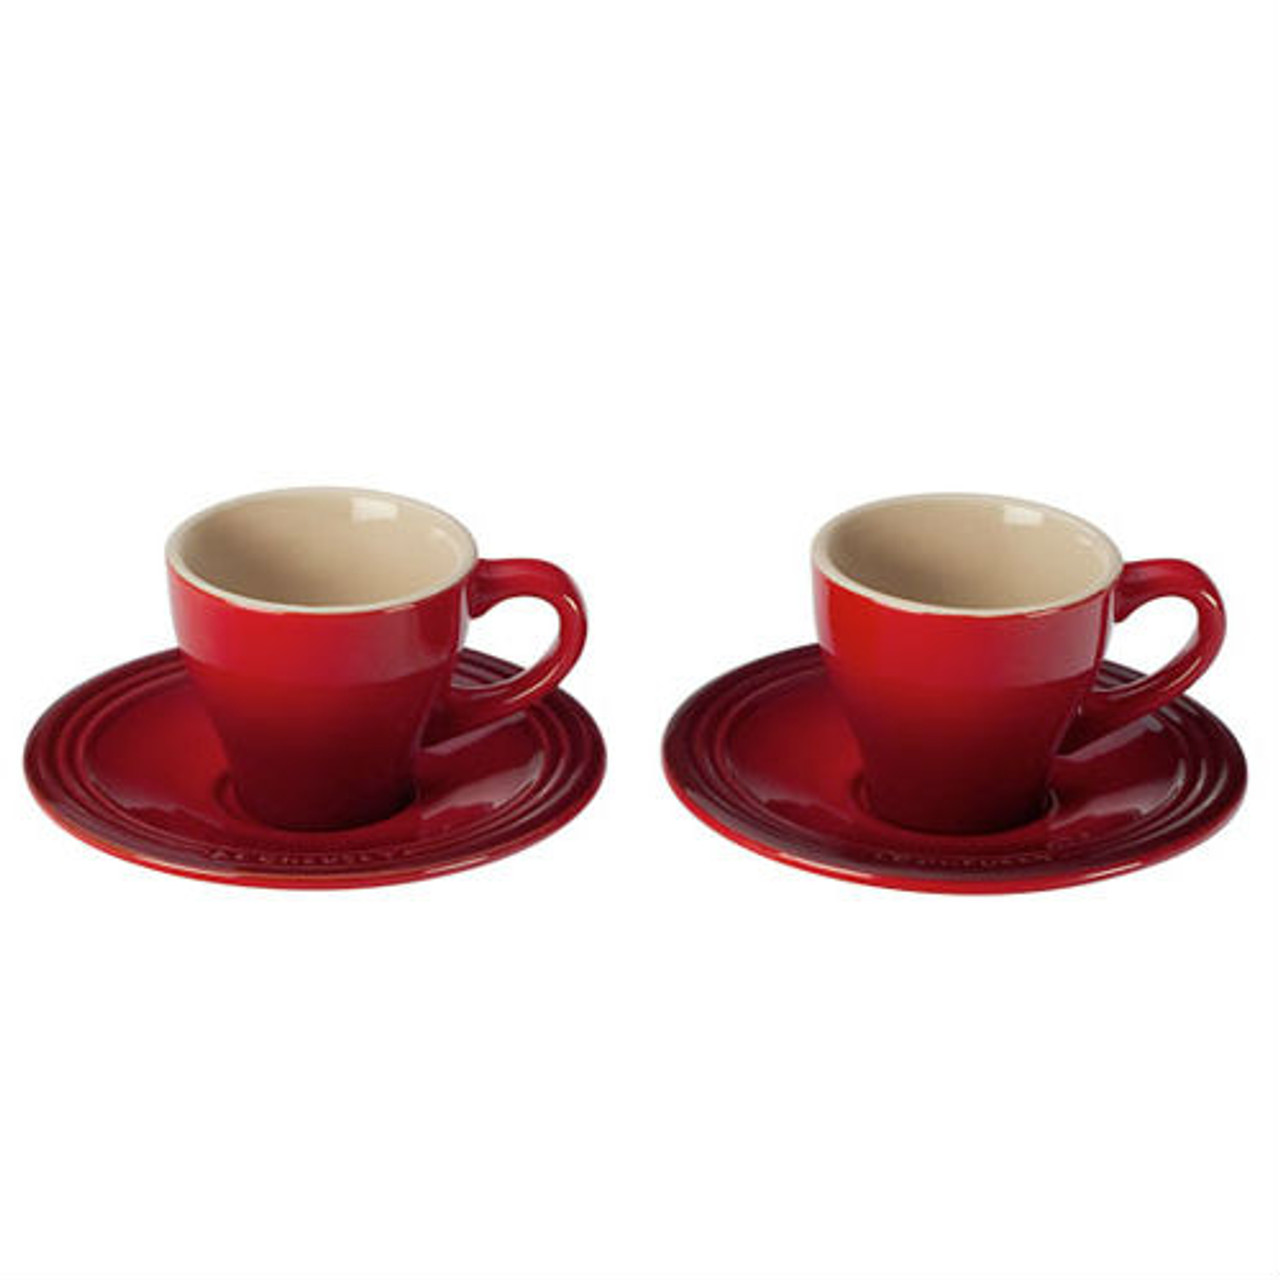 LE CREUSET CLASSIC ESPRESSO CUPS AND SAUCERS - SET OF 2